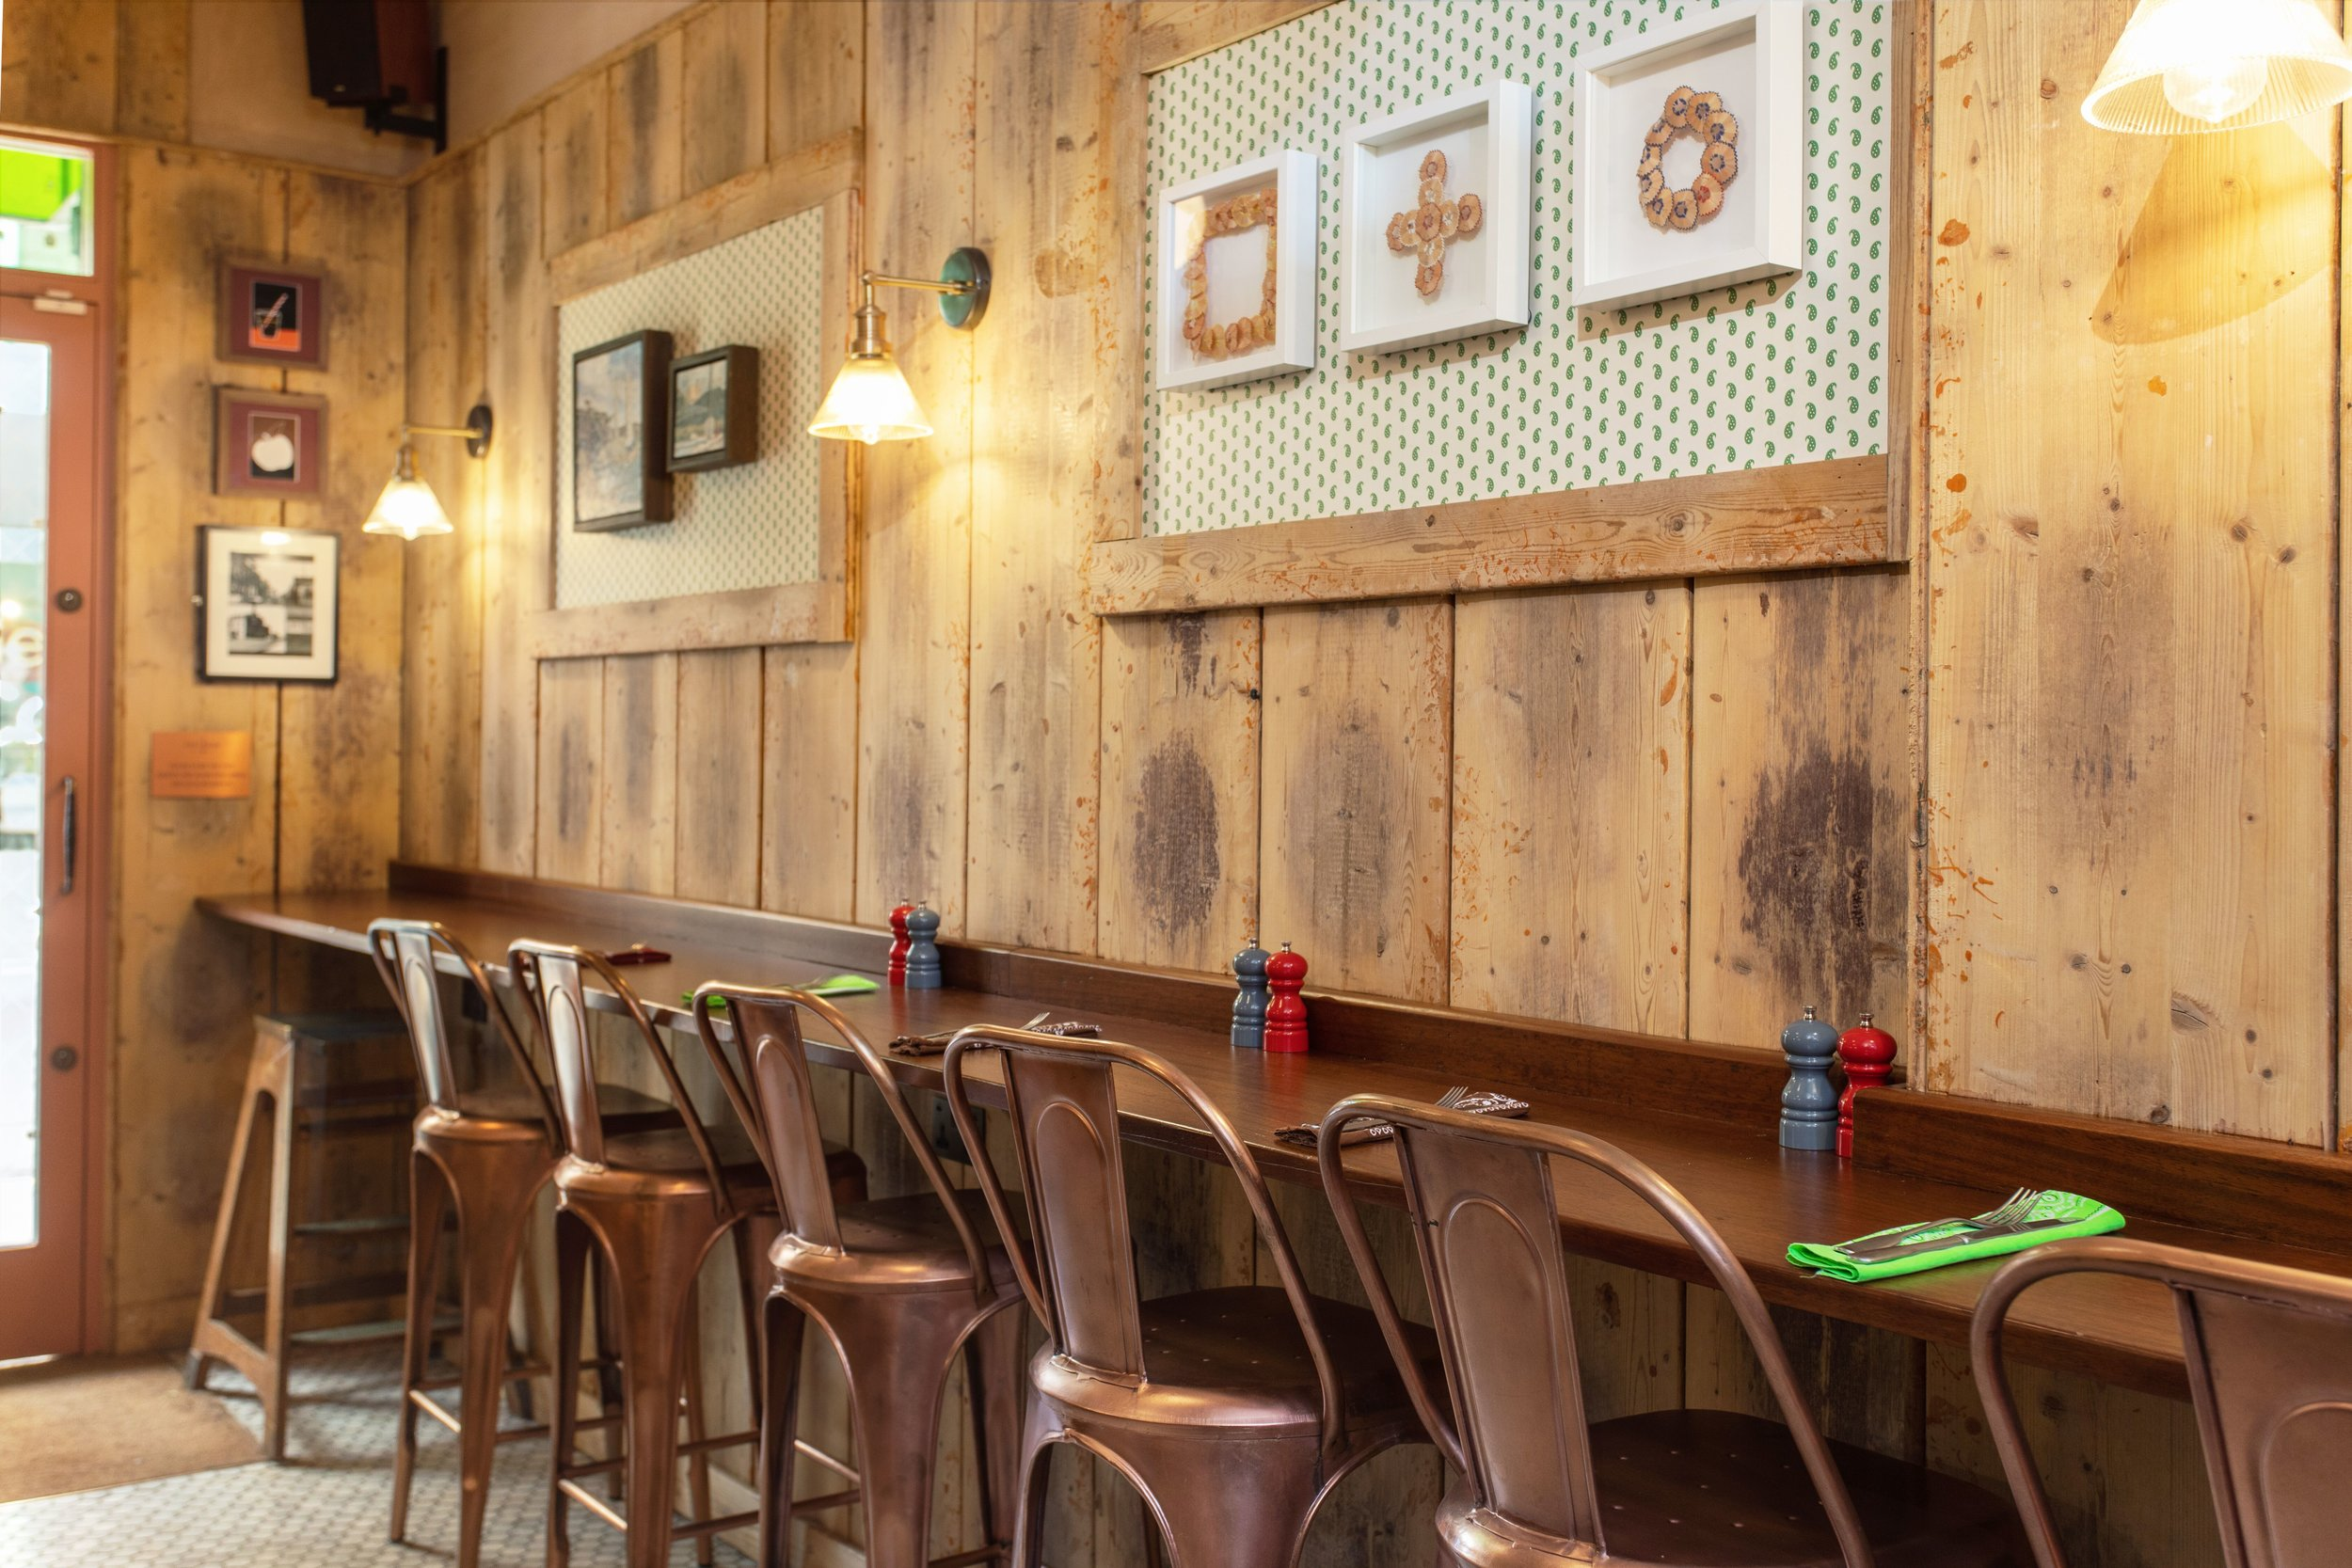 - Located in the heart of Chelsea's Lots Village Design District, Lots Road Café is a quaint, intimate neighborhood cafe offering fresh, locally-sourced food & drinks.